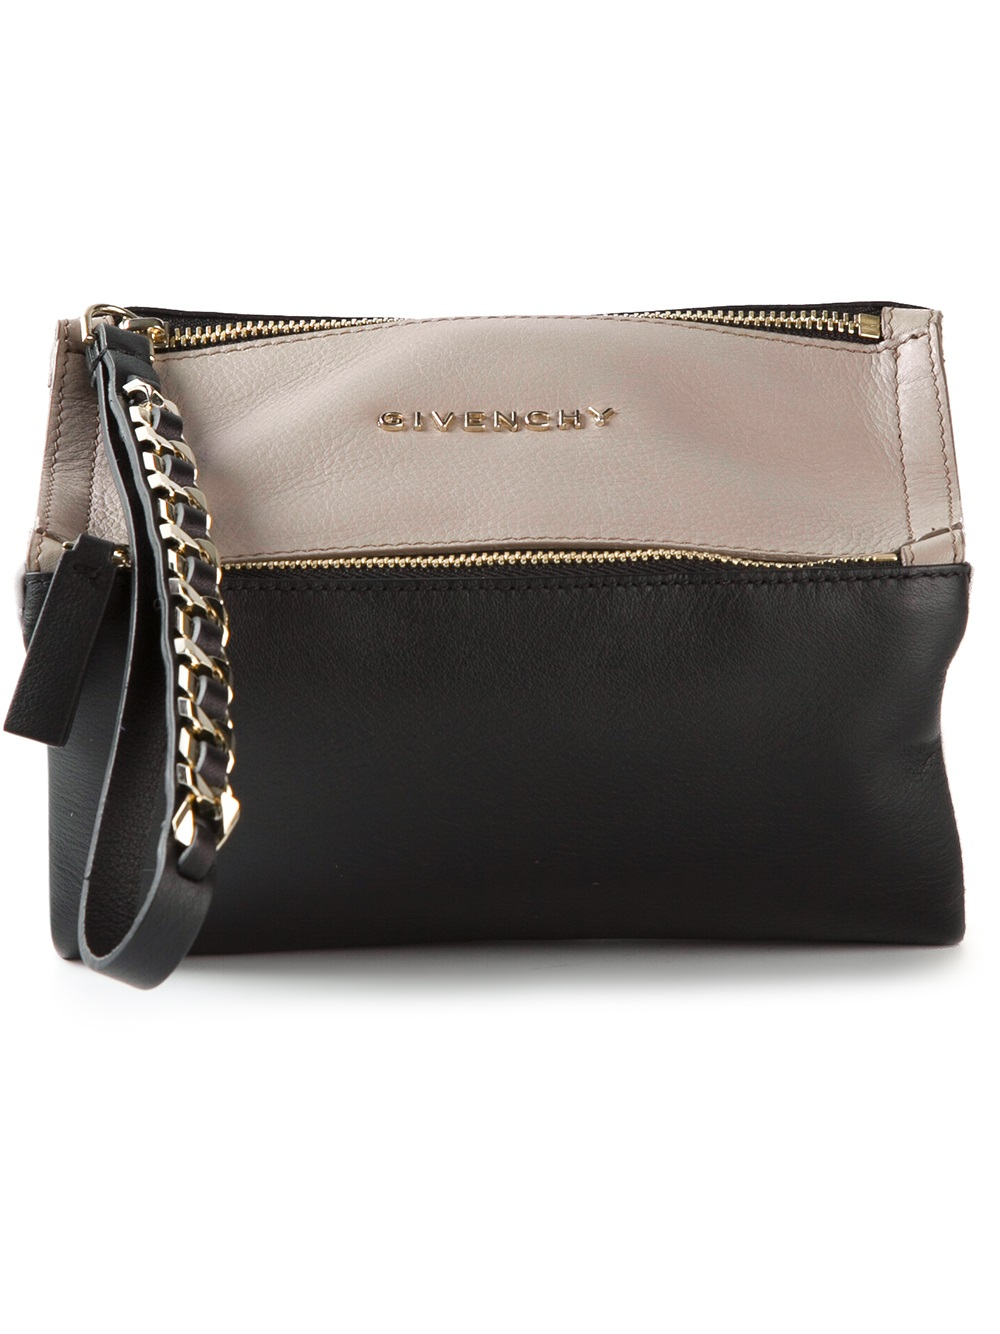 9ca4ad140e Givenchy Pandora Wristlet Clutch in Black - Lyst